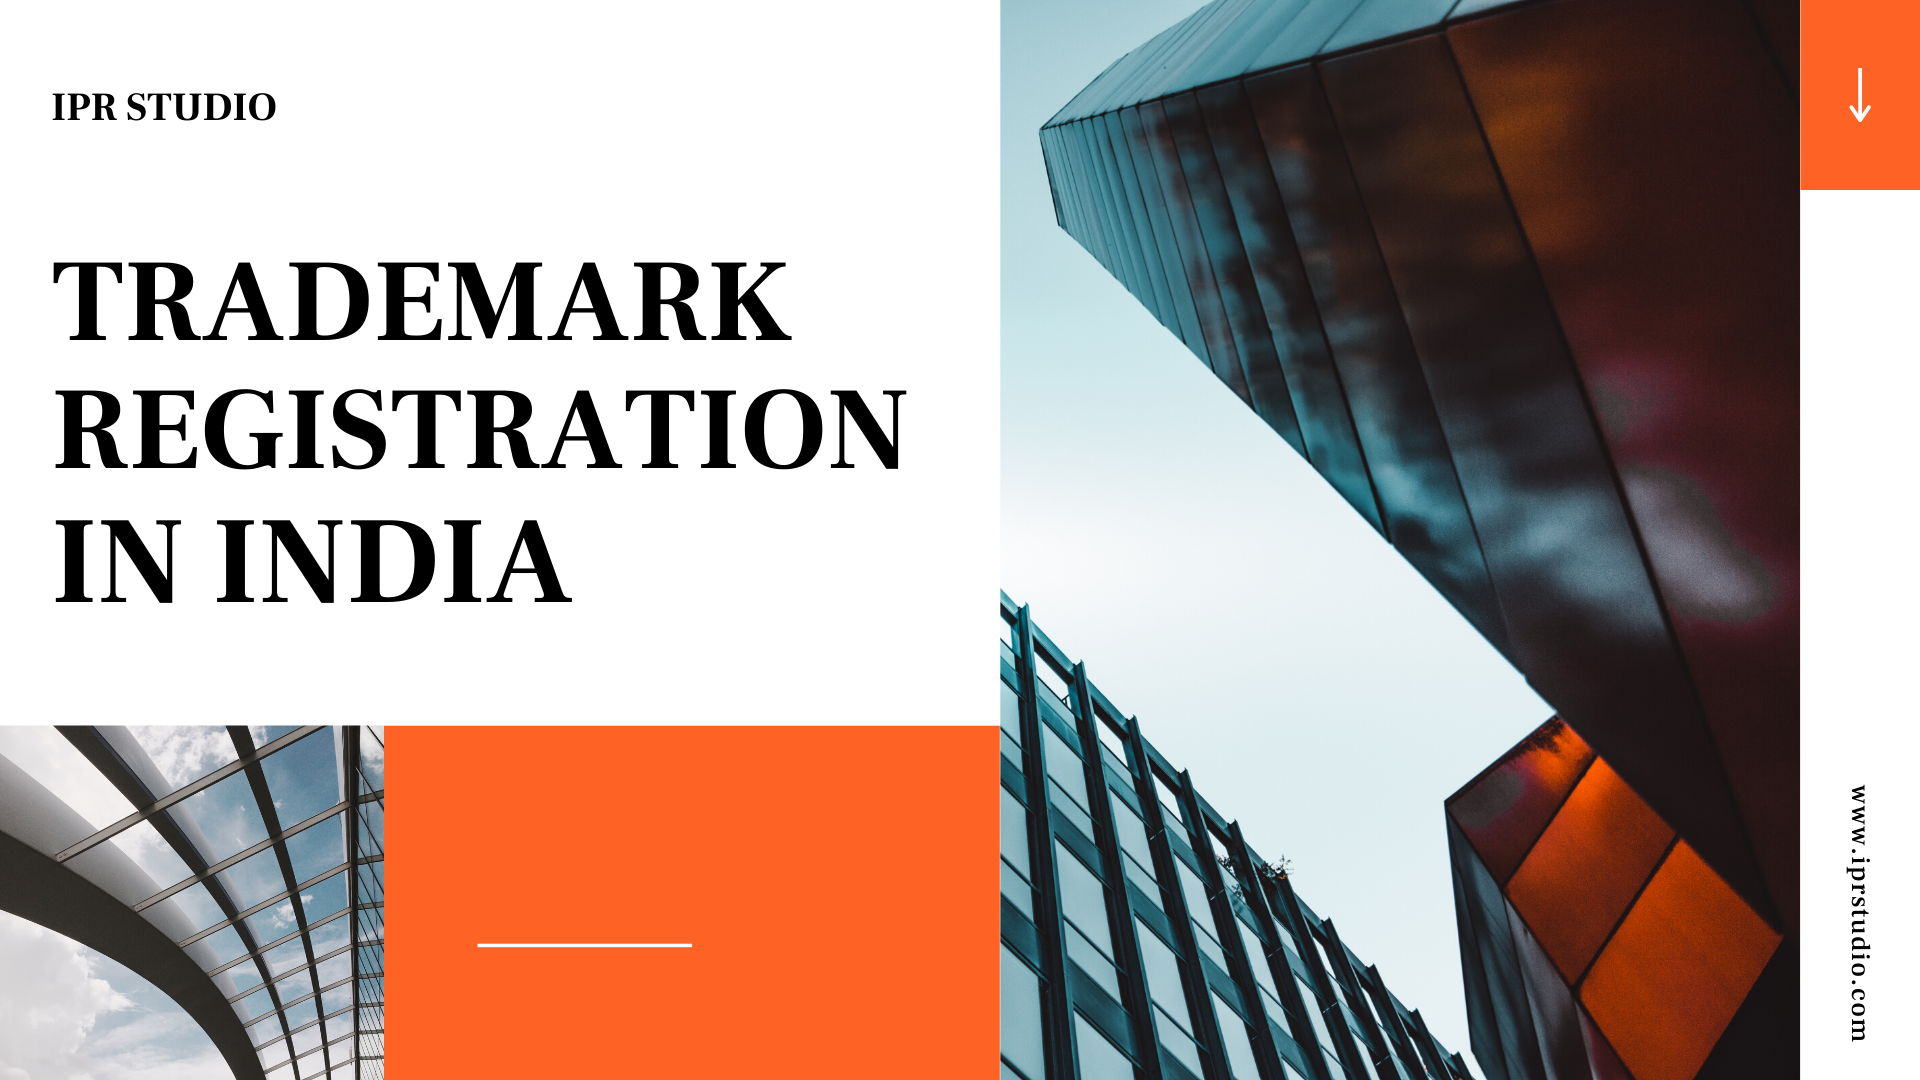 trademark registration process ppt trademark registration fees trademark registration process step by step documents required for trademark registration in india trademark registration status trademark registration fees in india trademark attorney registration trademark certificate download